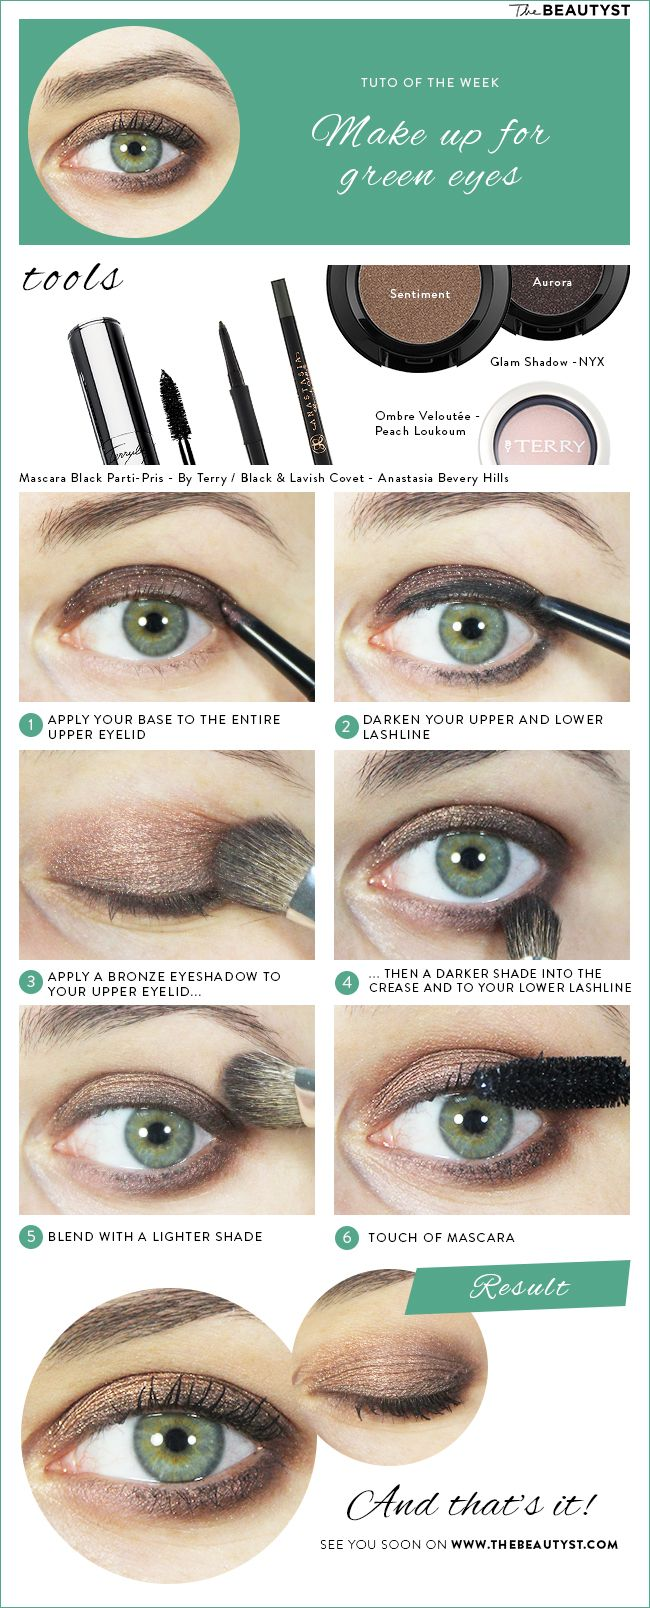 463 best natural eye make up tutorial images on pinterest eye makeup tutorials beauty makeup. Black Bedroom Furniture Sets. Home Design Ideas